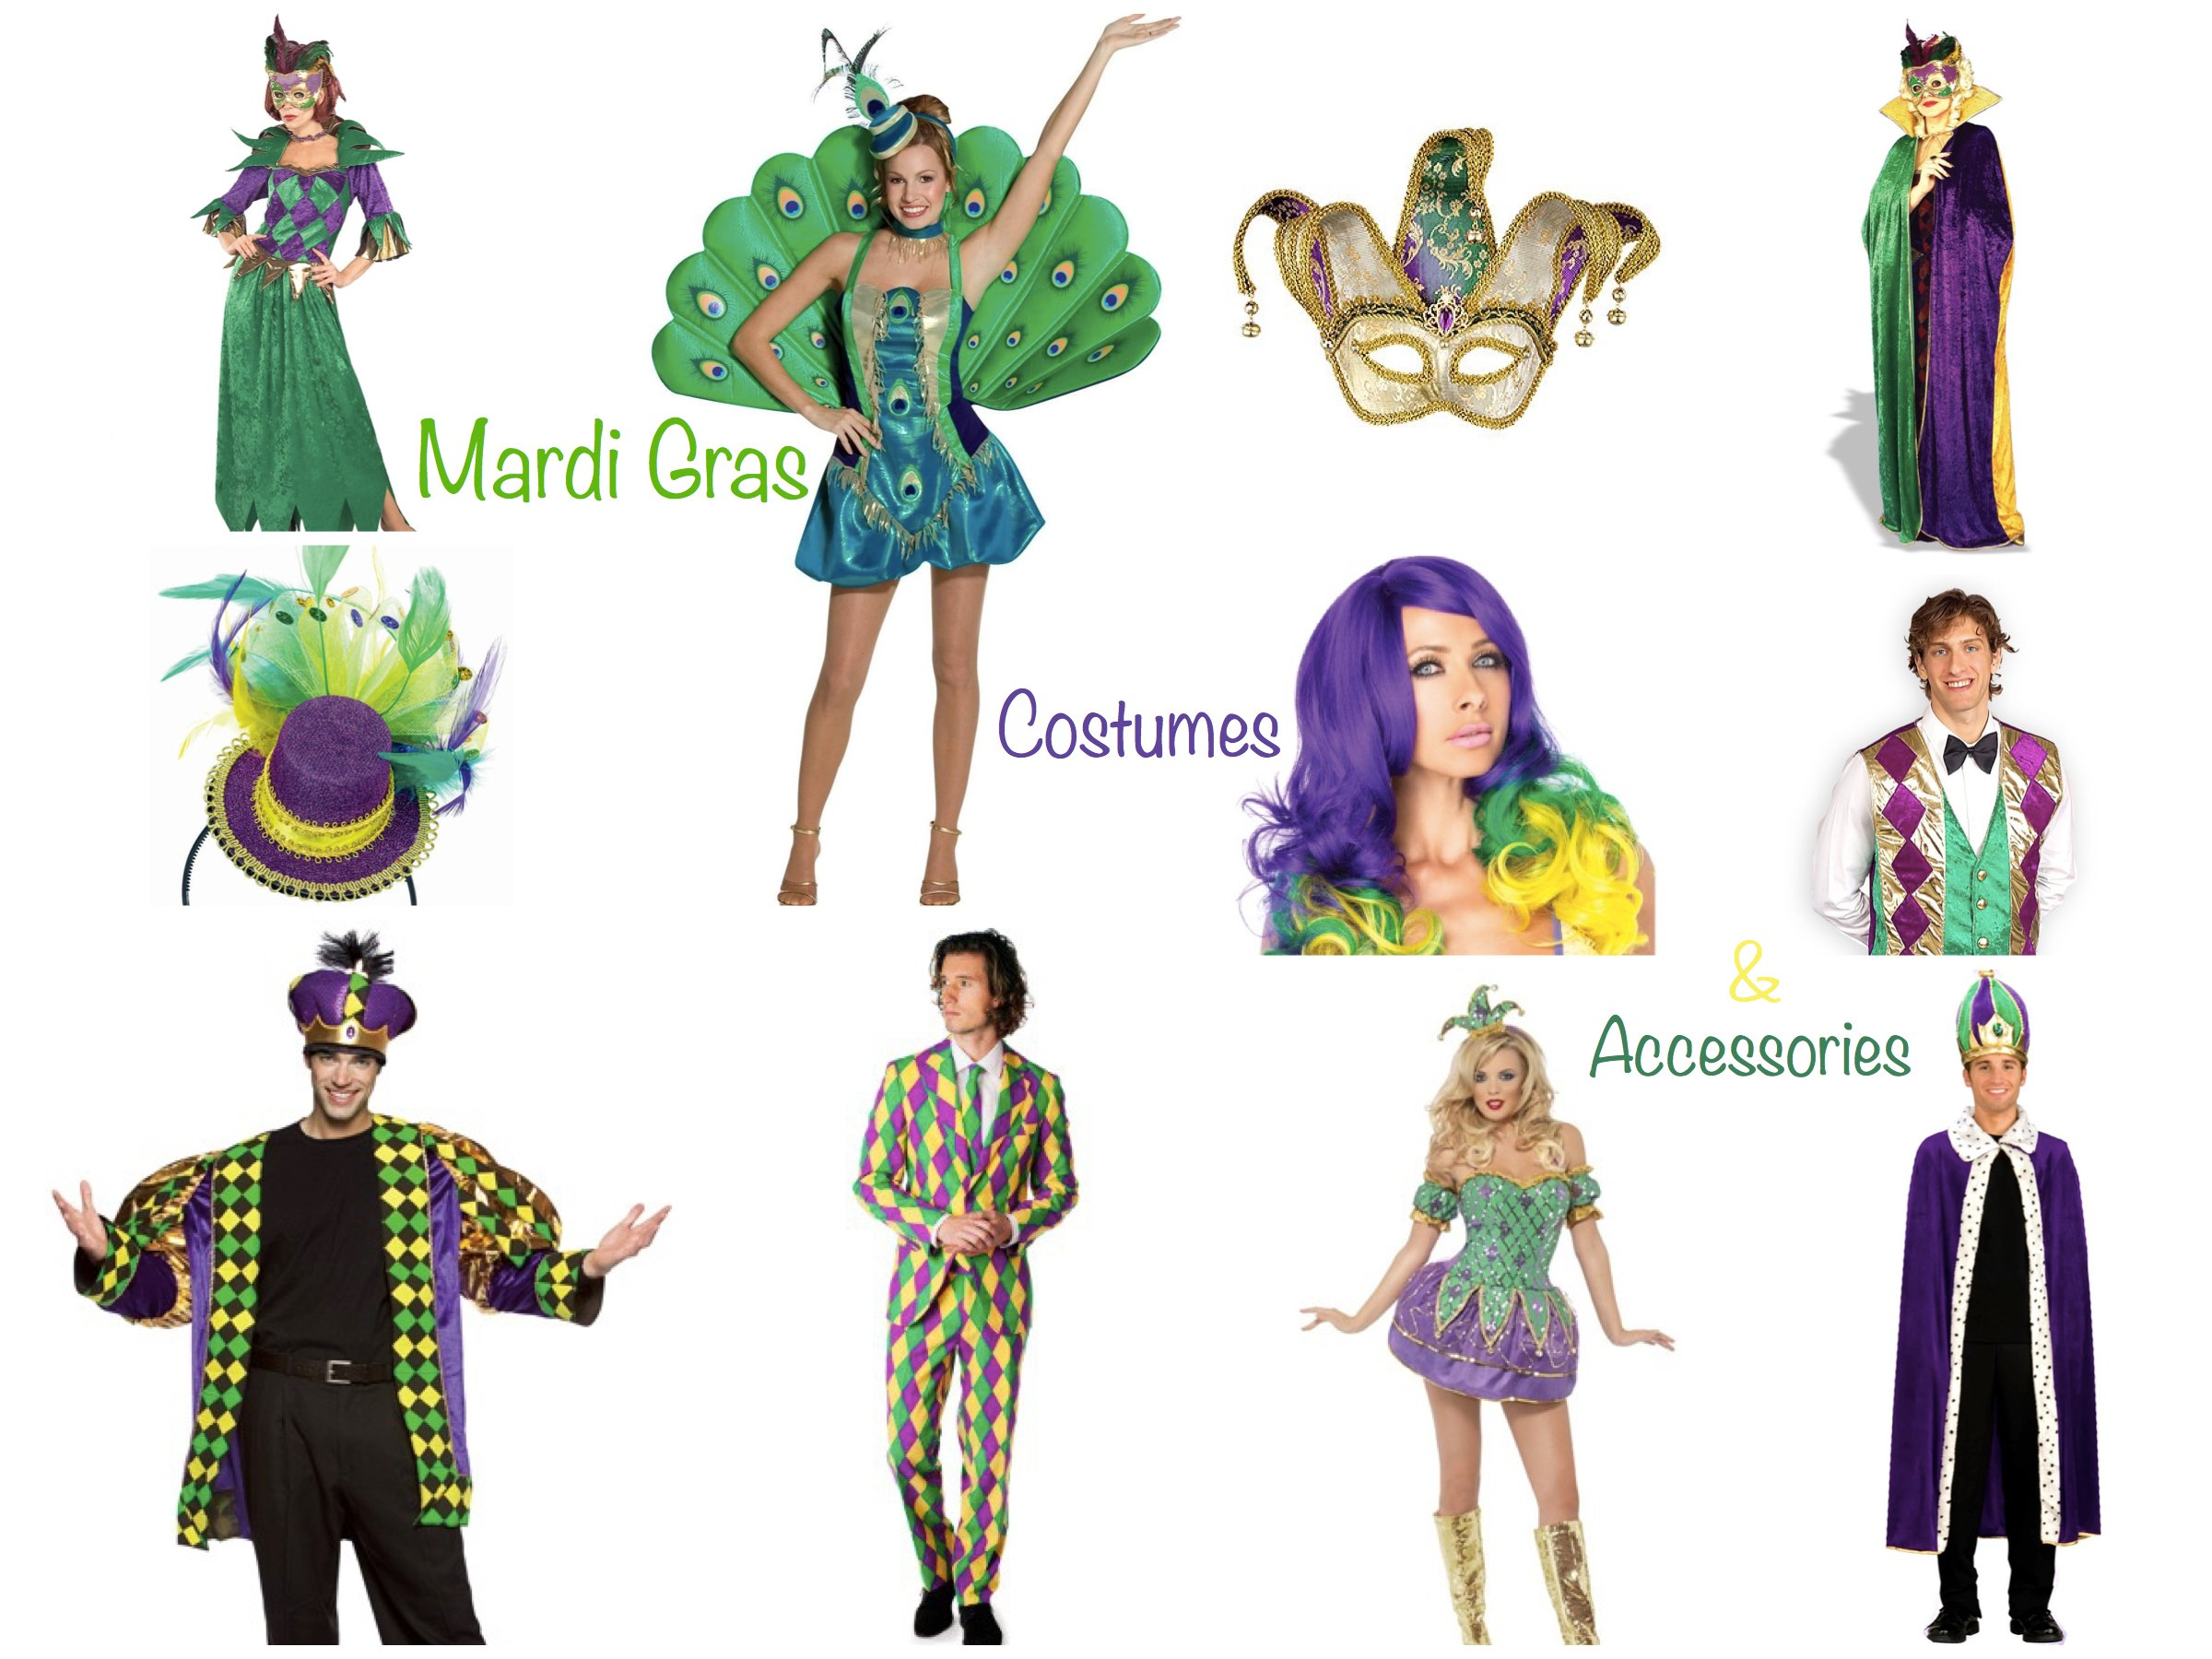 Mardi Gras Costumes Accessories